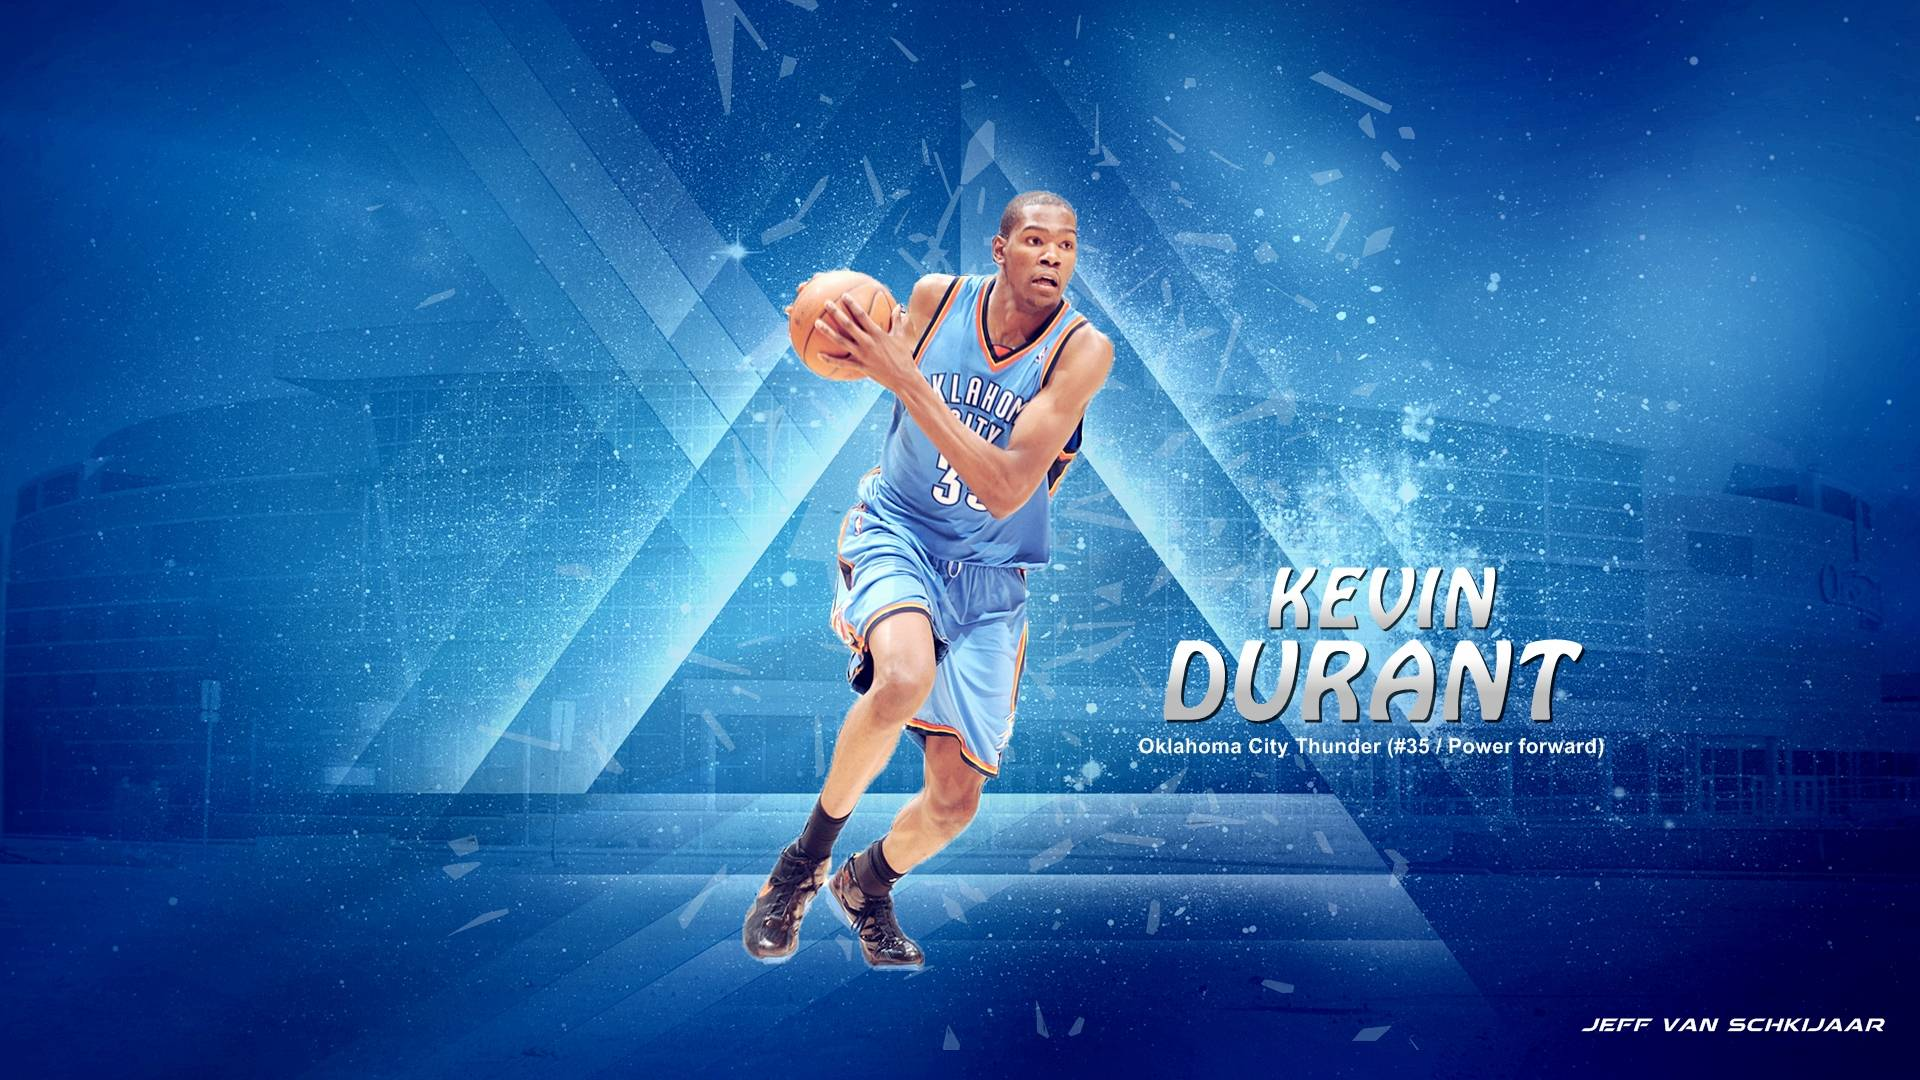 download Kevin Durant Wallpapers 2015 HD [1920x1080] for your 1920x1080